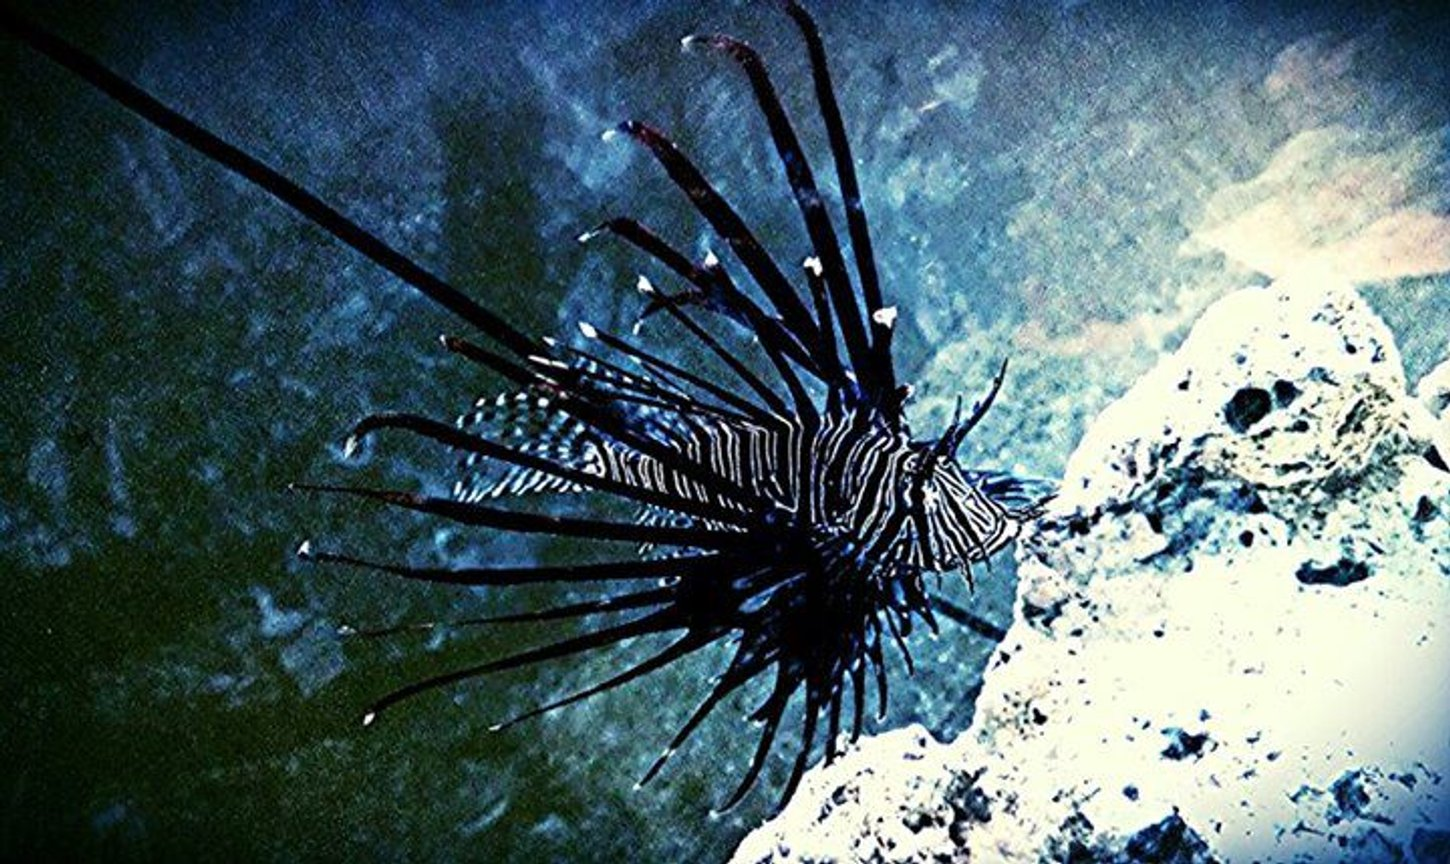 saltwater fish - pterois volitans - volitan lionfish, colored stocking in 100 gallons tank - Volitan lionfish